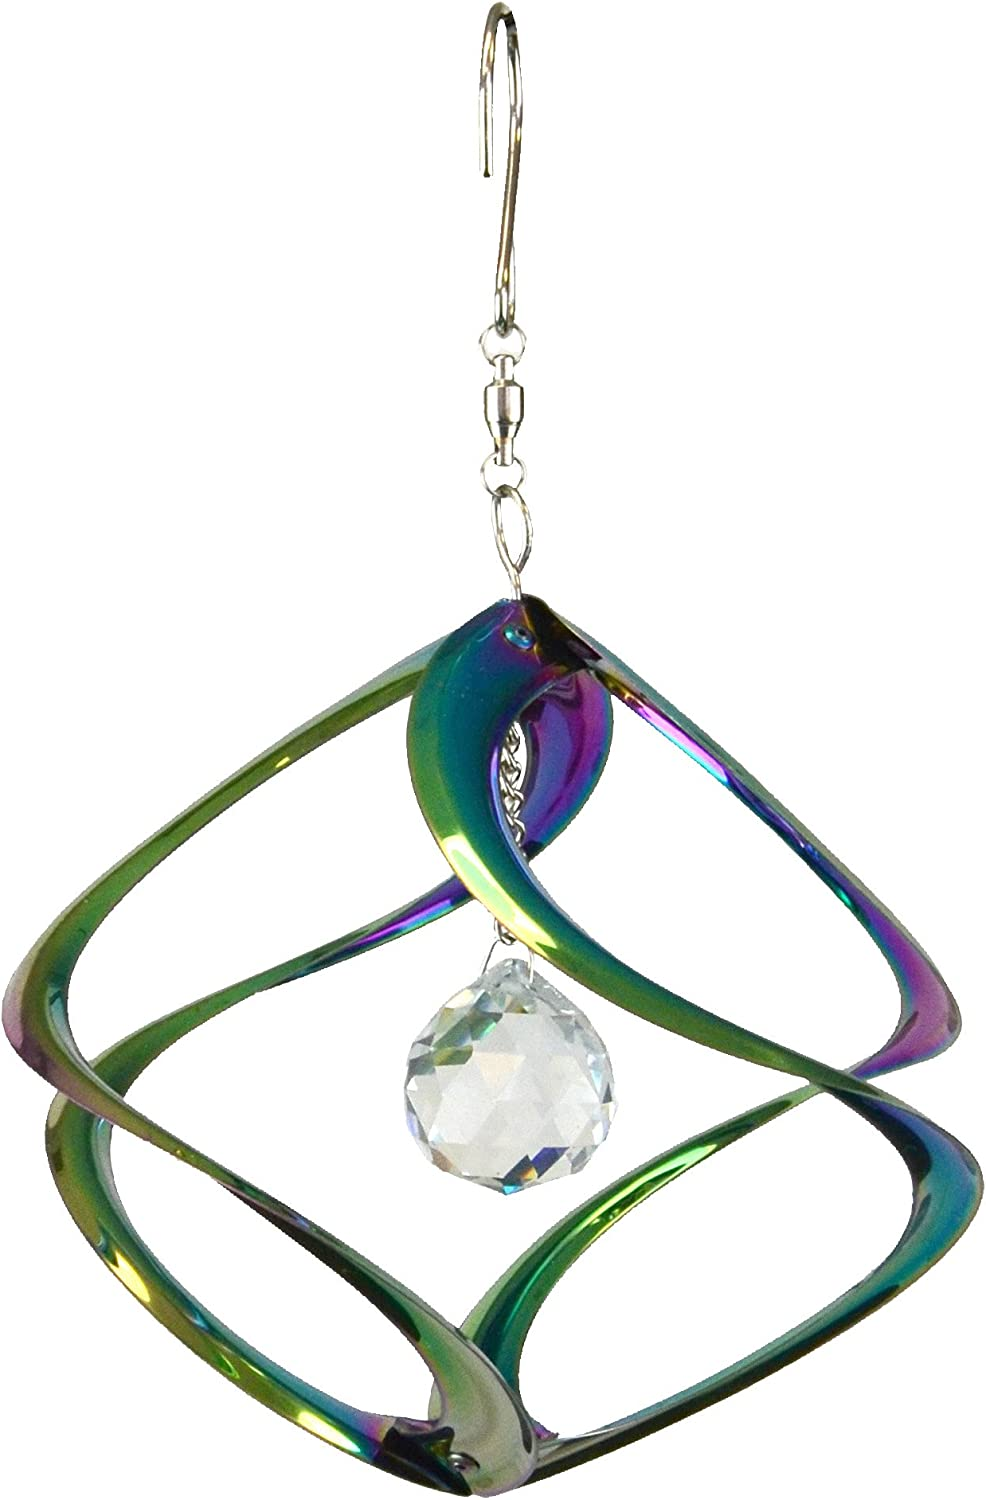 Red Carpet Studios Cosmix Rainbow with Crystals Wind Spinner